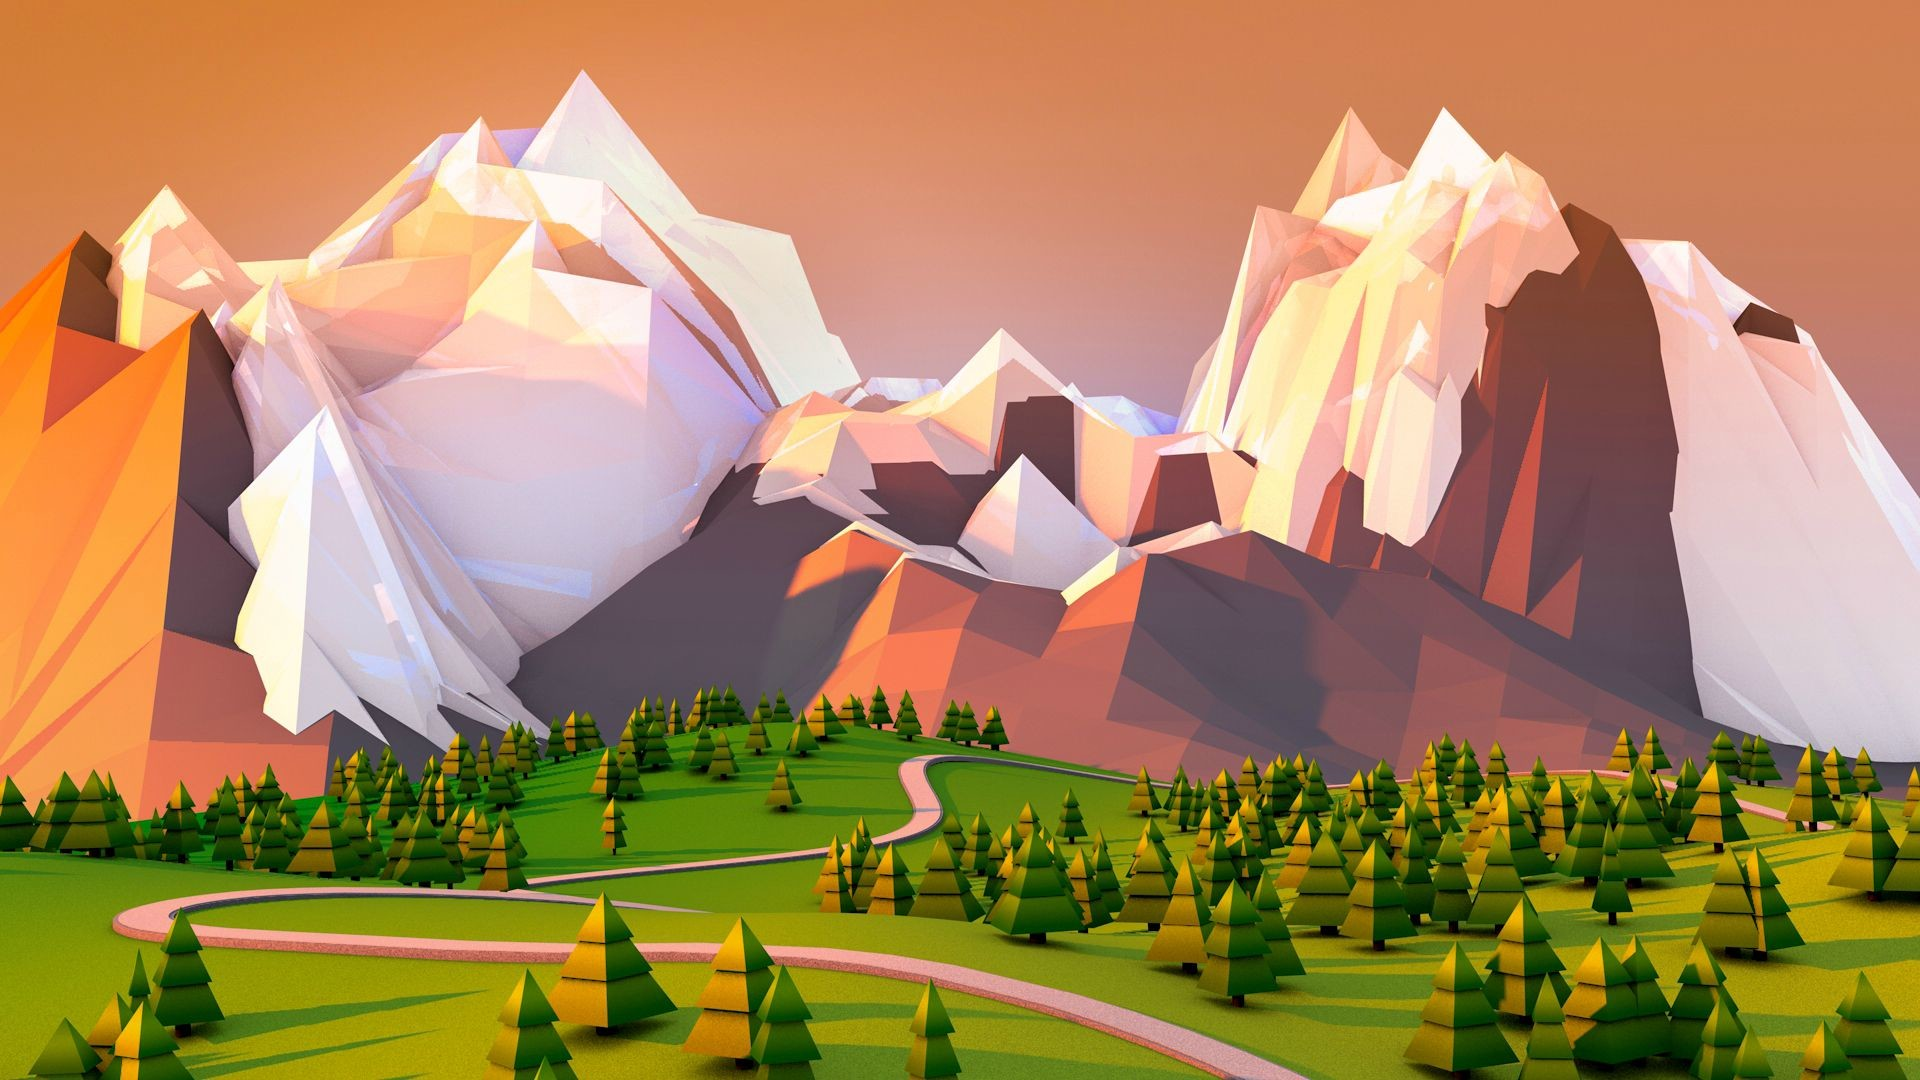 Res: 1920x1080, Polygons In Nature Wallpaper